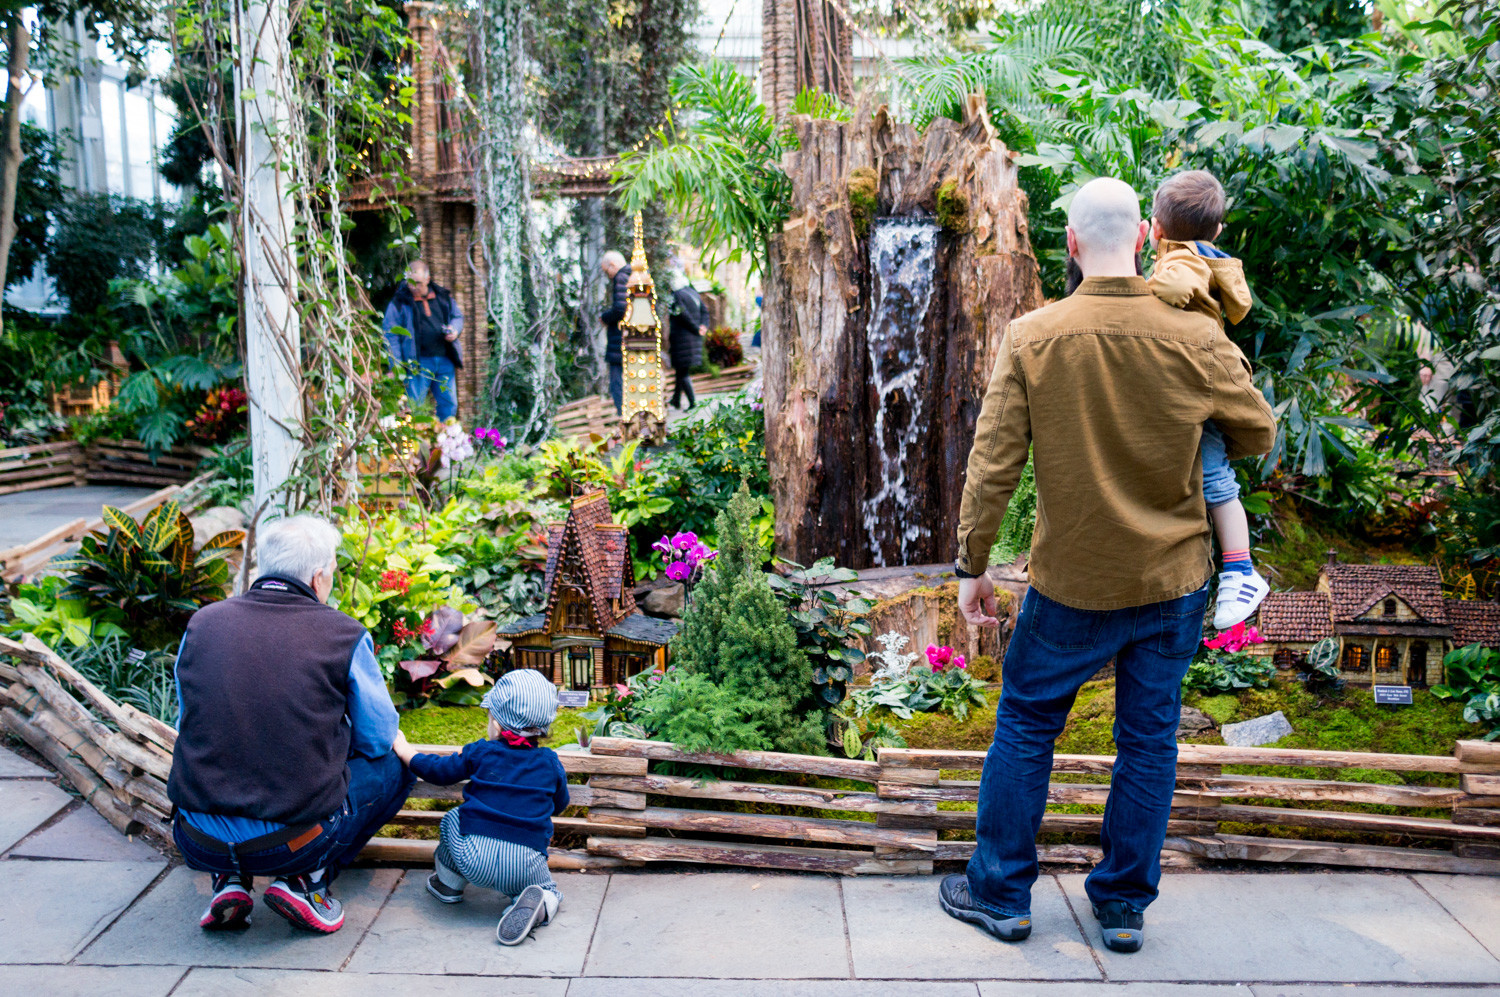 Families Take In The Holiday Train Show At The New York Botanical Garden.